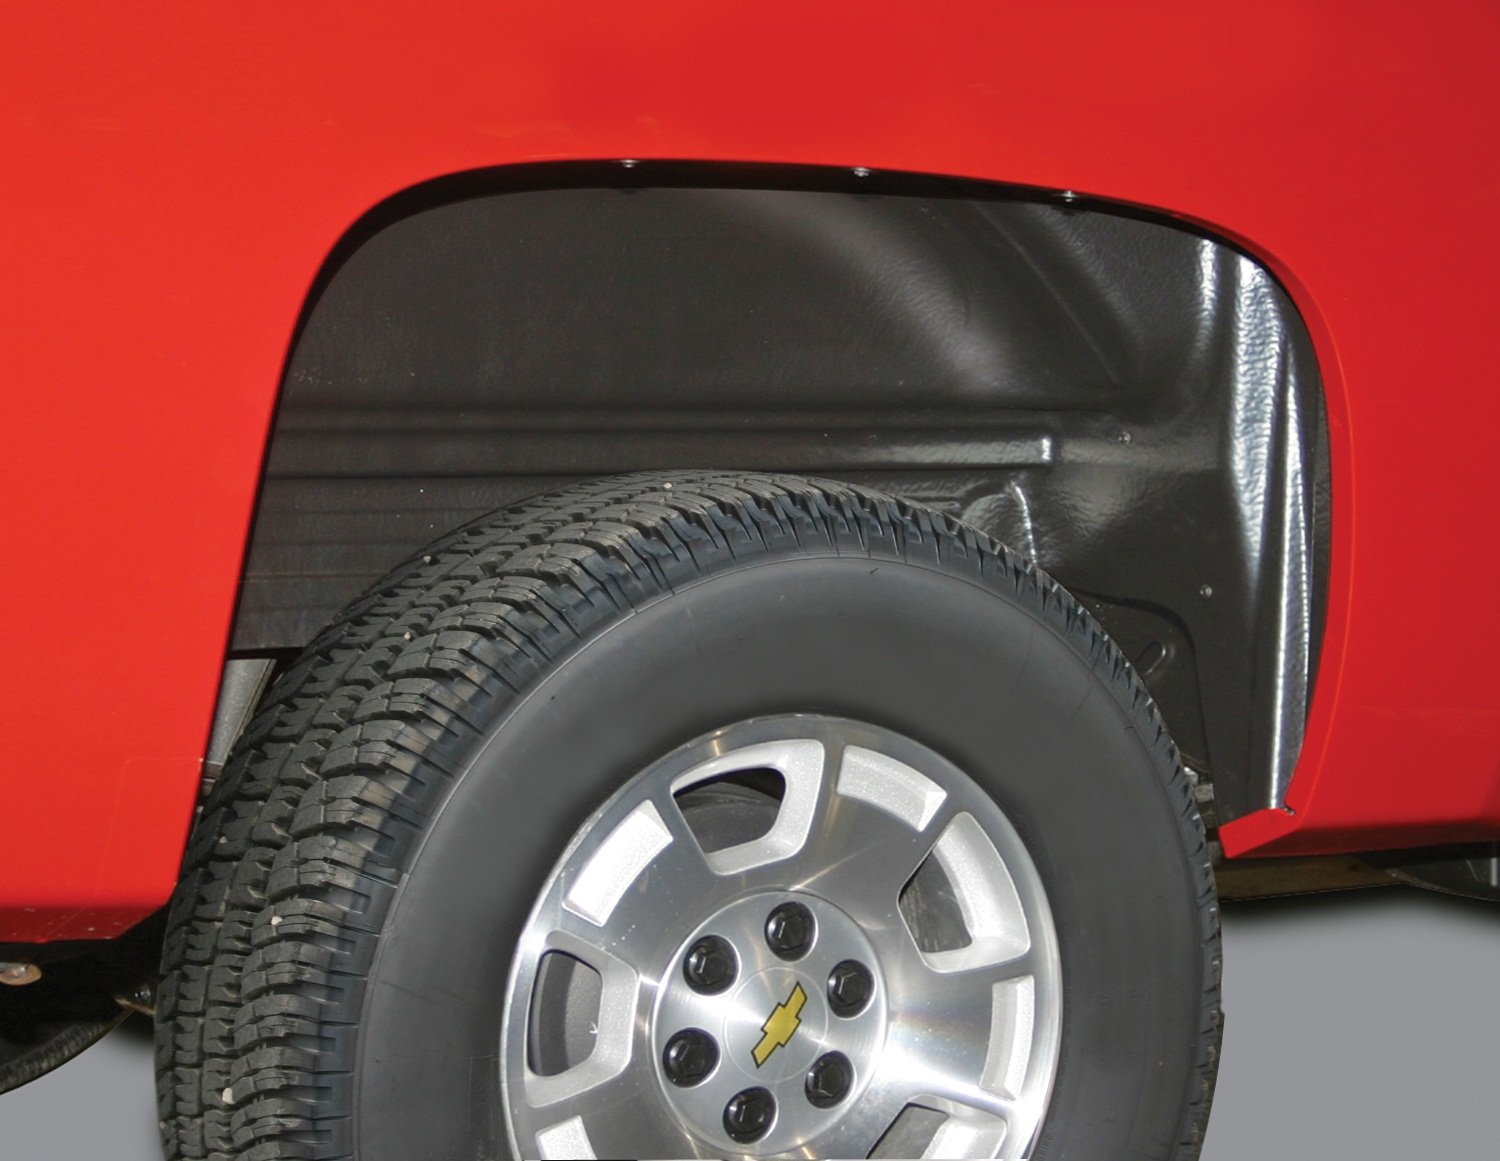 Rugged Liner Rear Wheel Well Liners | WWC99 | fits 99-07 Chevy 99-07 Classic 1500/2500/3500 Series Old Body Style, All bed sizes